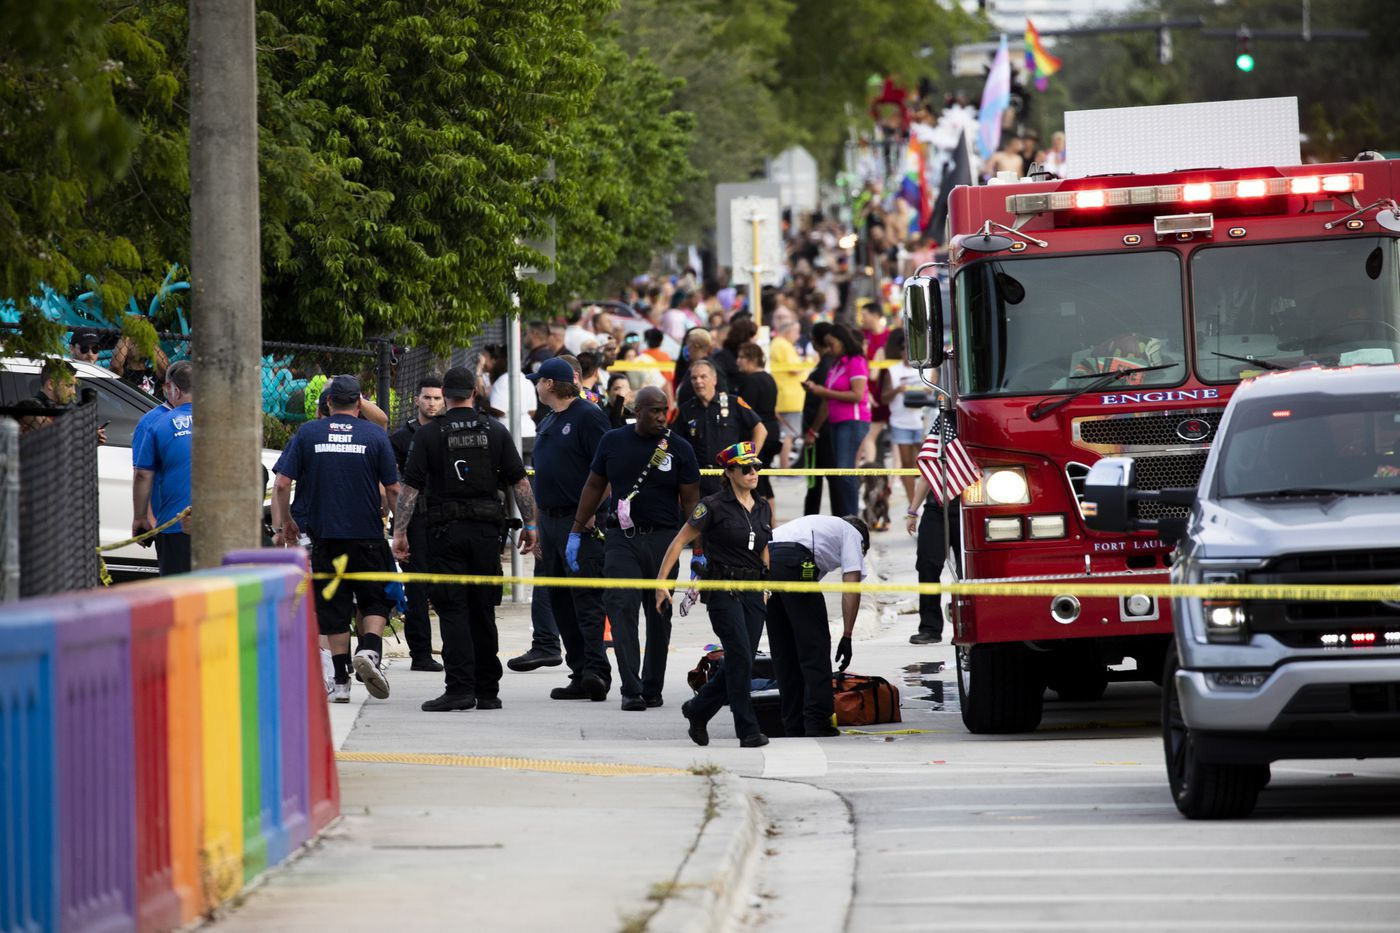 PHOTOS: Vehicle drives into crowd at Wilton Manors Pride parade, killing at least one and injuring others